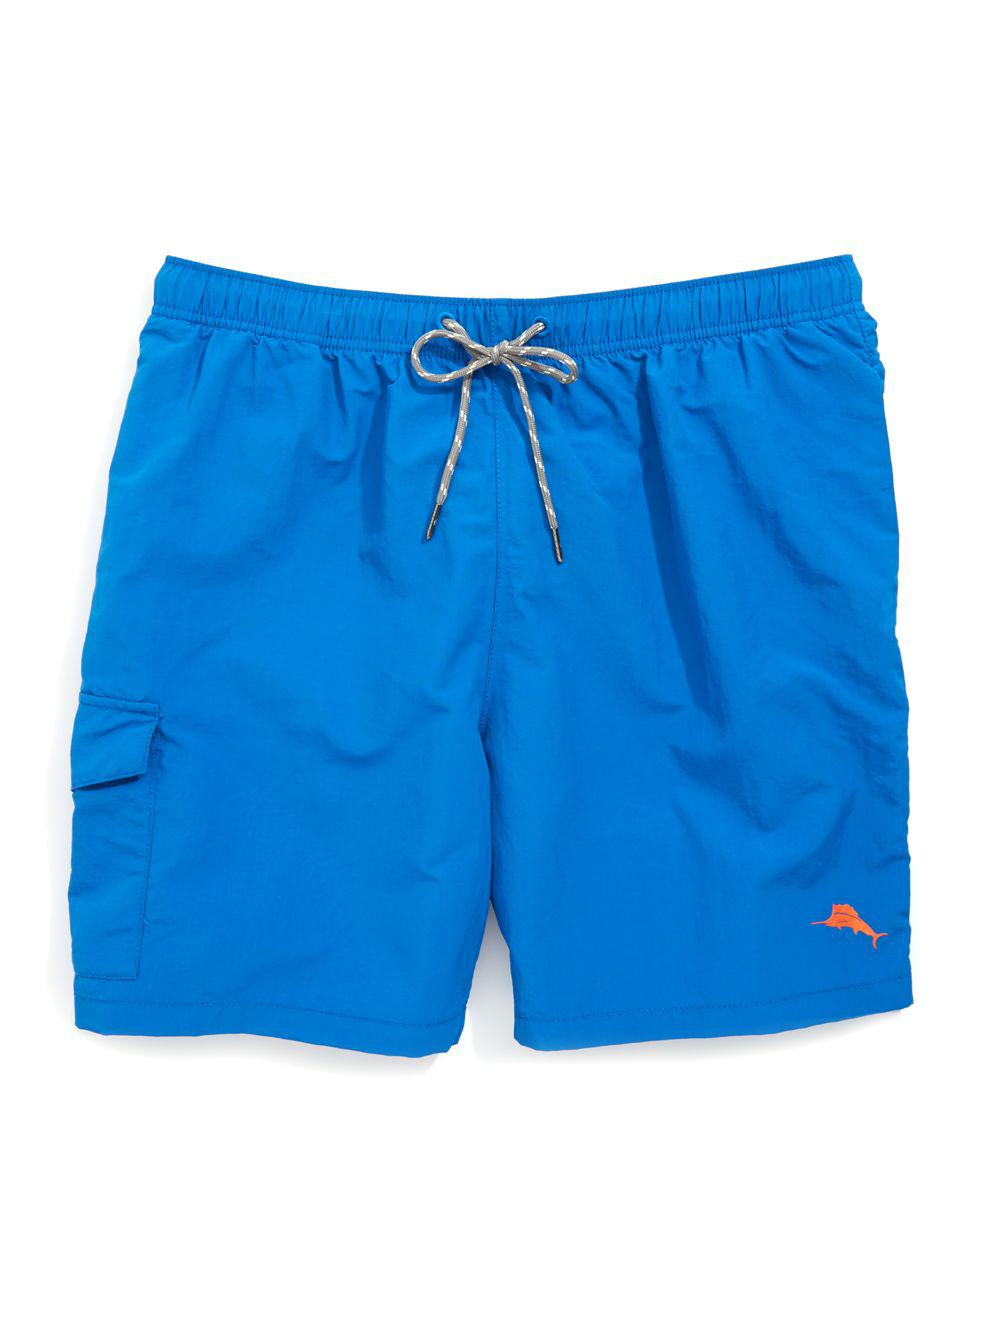 c31a58d2d6 Tommy Bahama The Naples Drawstring Swim Shorts in Blue for Men - Lyst